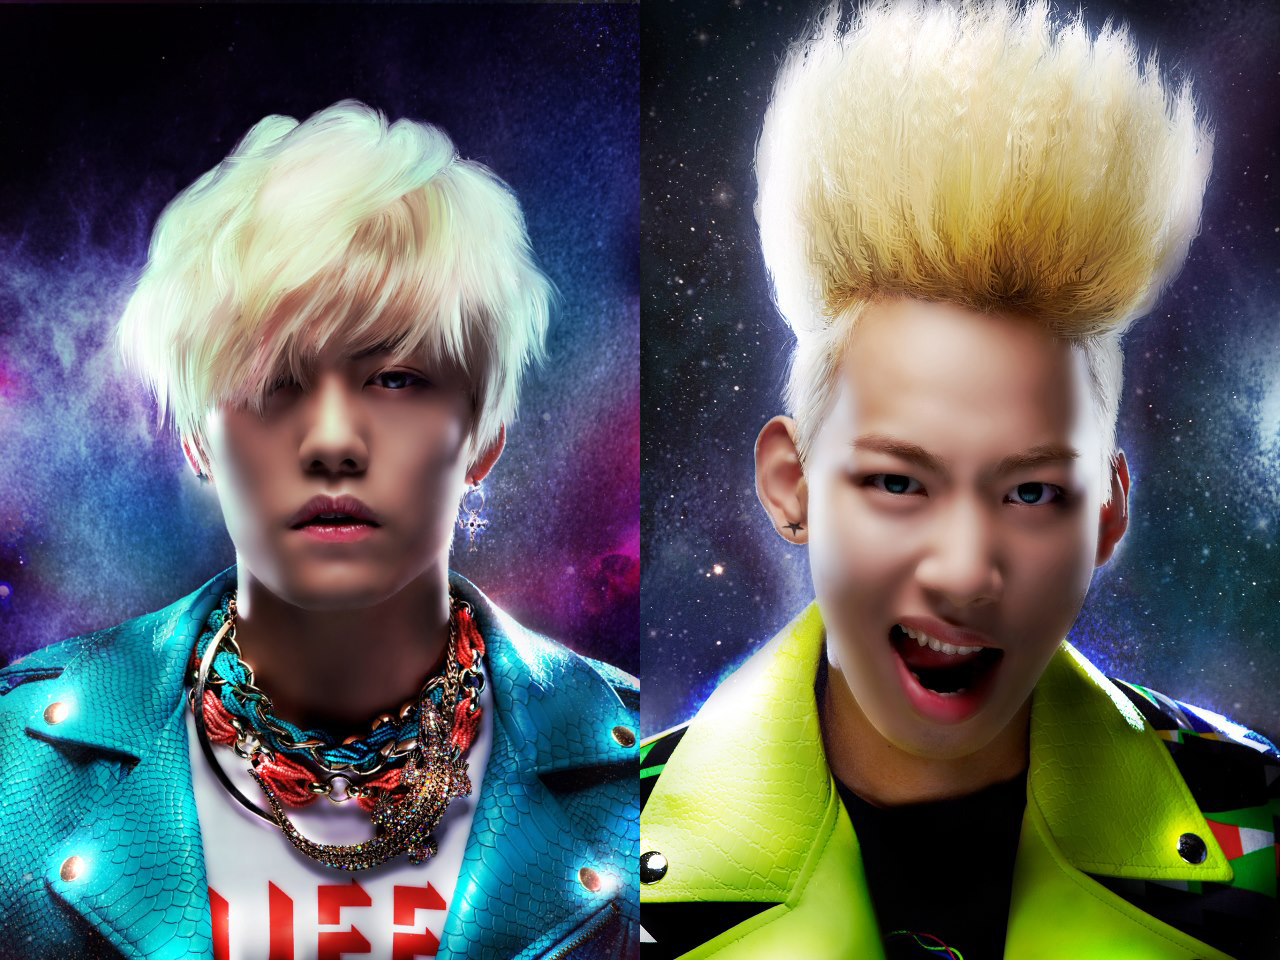 Upcoming Group LC9 Reveals Two More Members